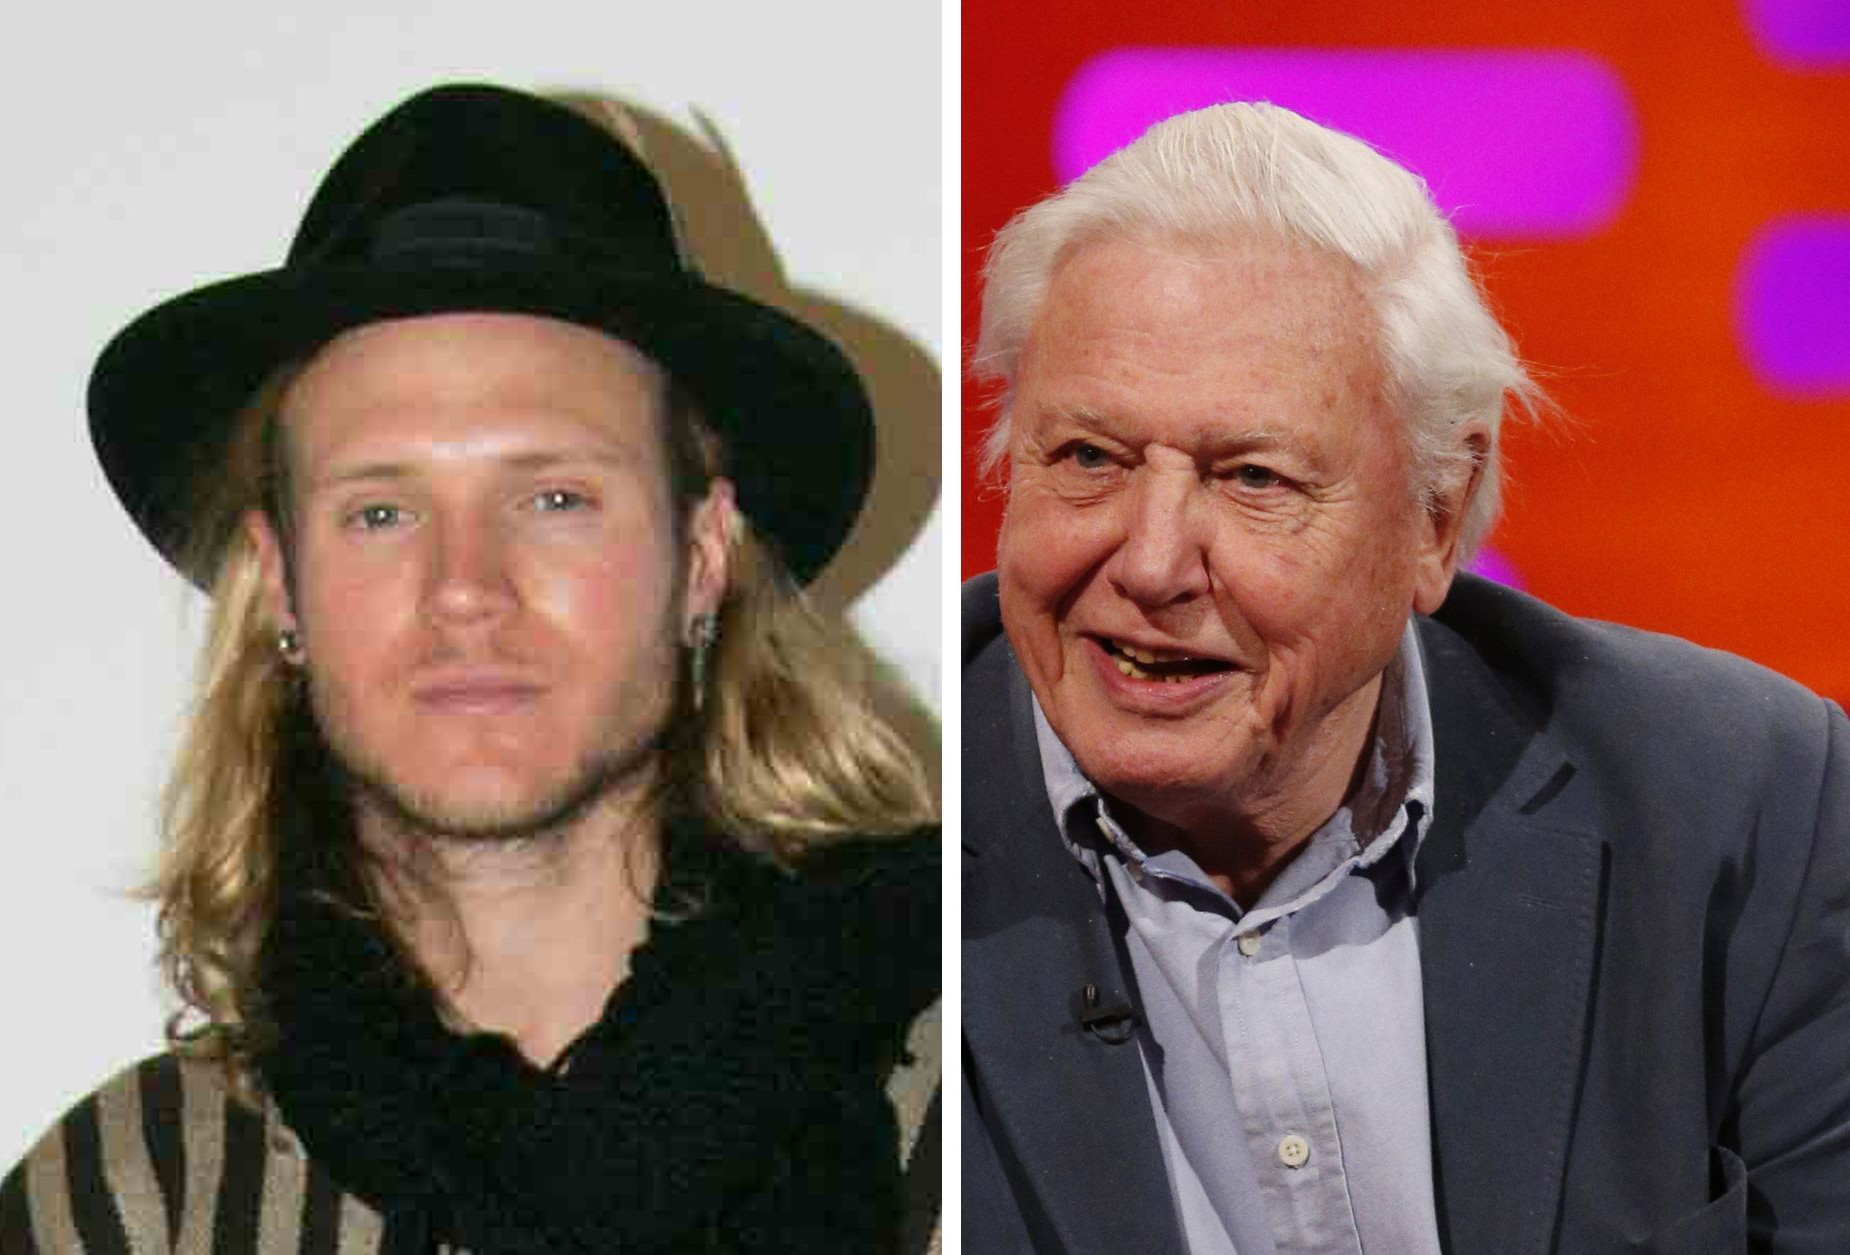 McBusted's Dougie Poynter outs himself as Sir David Attenborough's crazy stalker